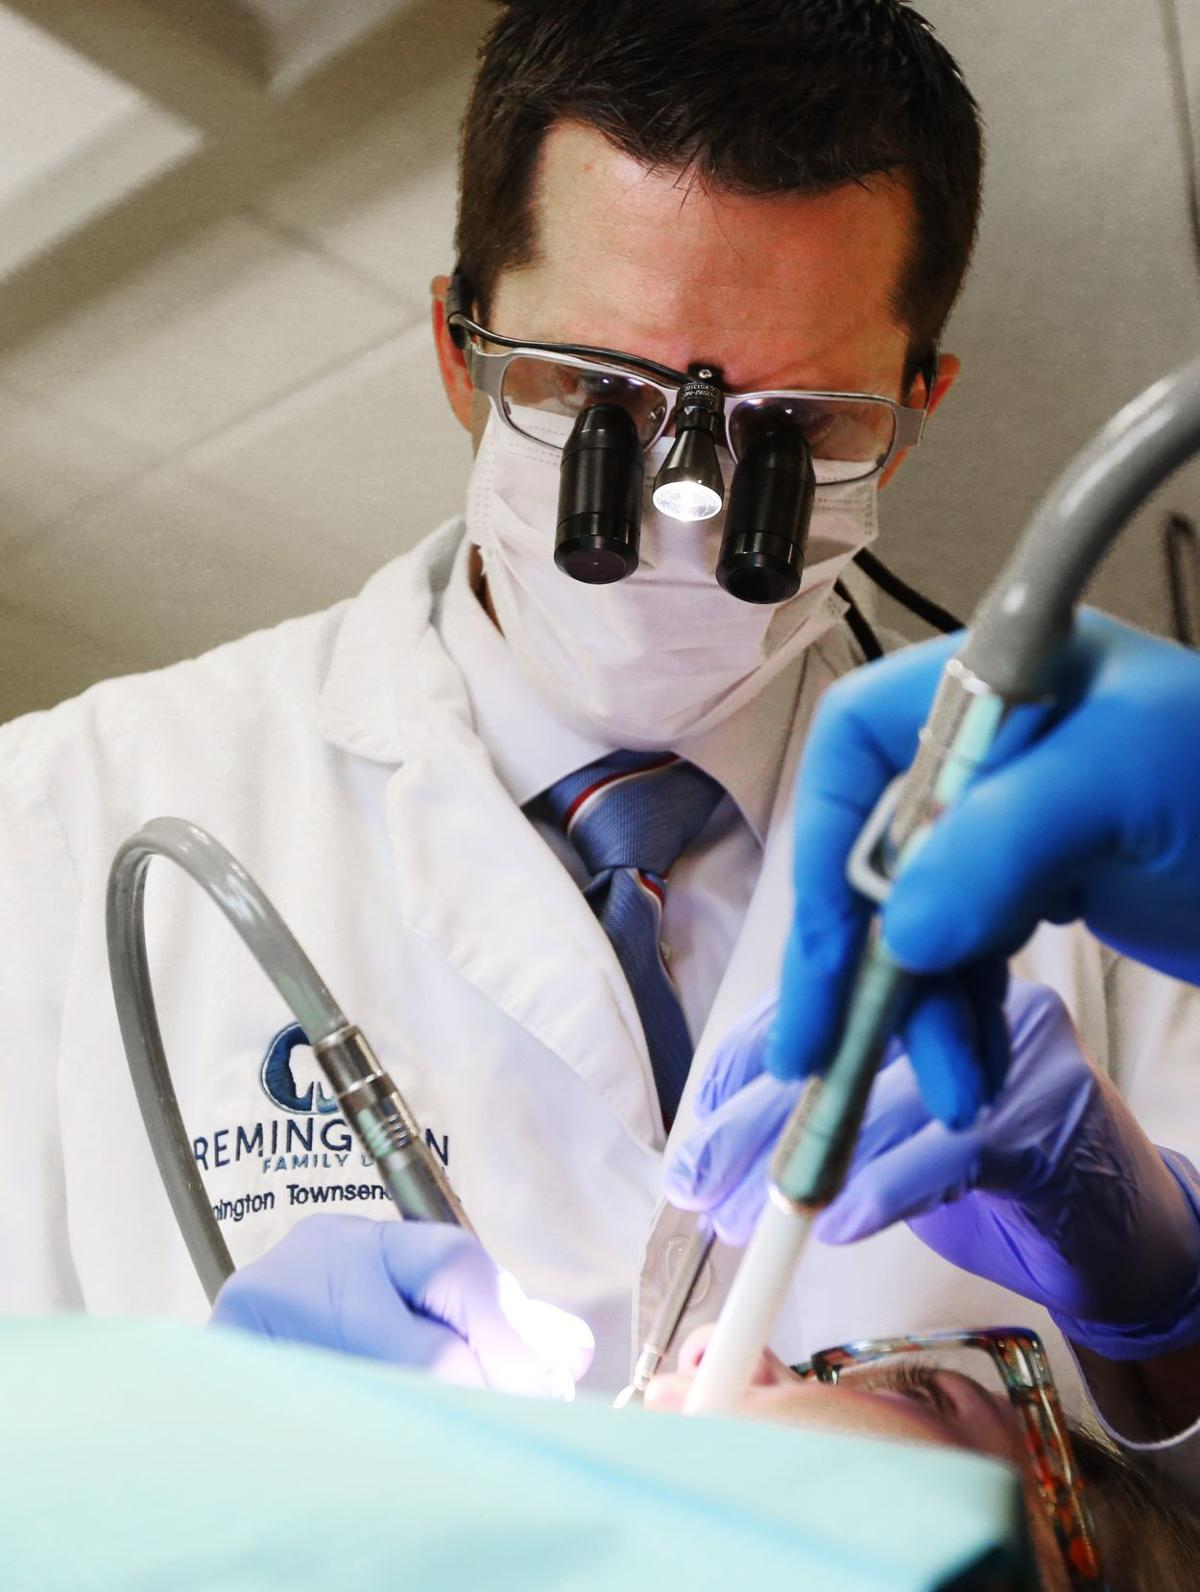 Dr. Remington Townsend works on filling a cavity